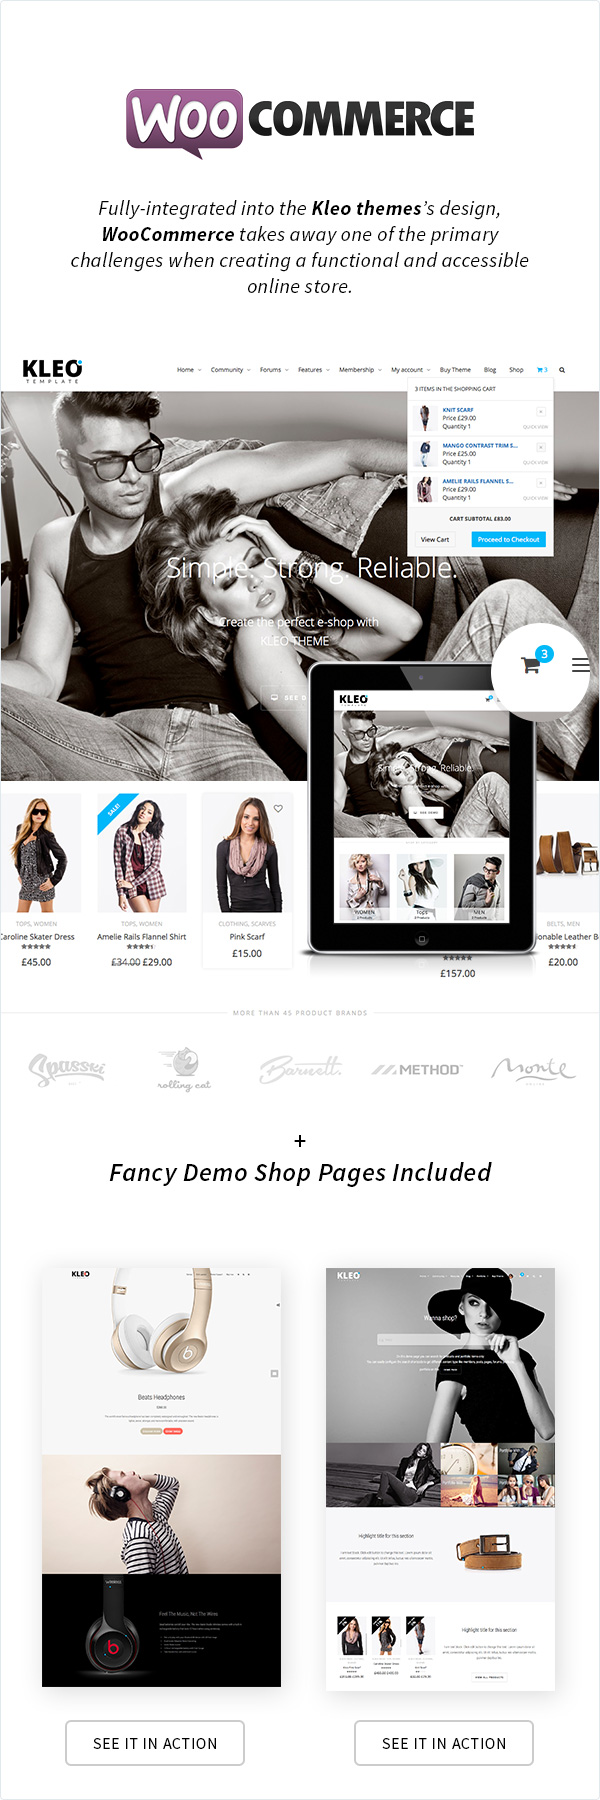 KLEO - Pro Community Focused, Multi-Purpose BuddyPress Theme - 20